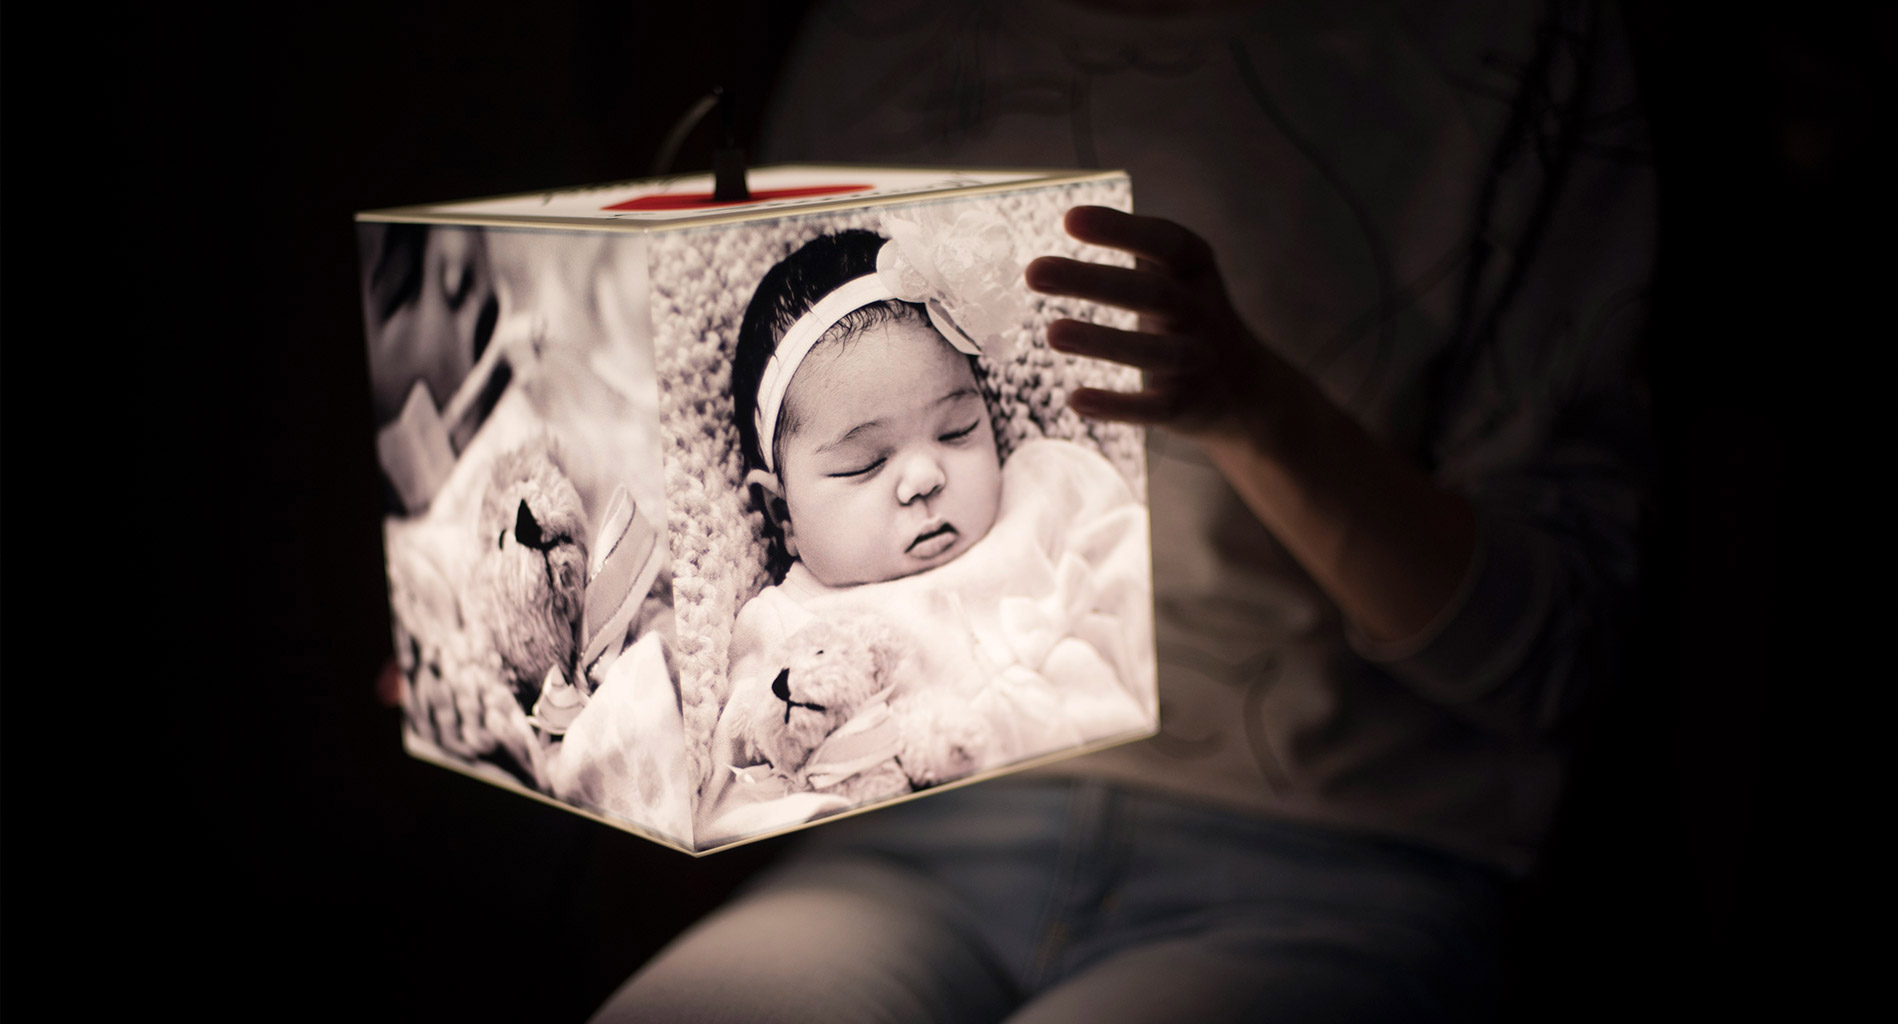 Photo lamps - the bright future of gift giving